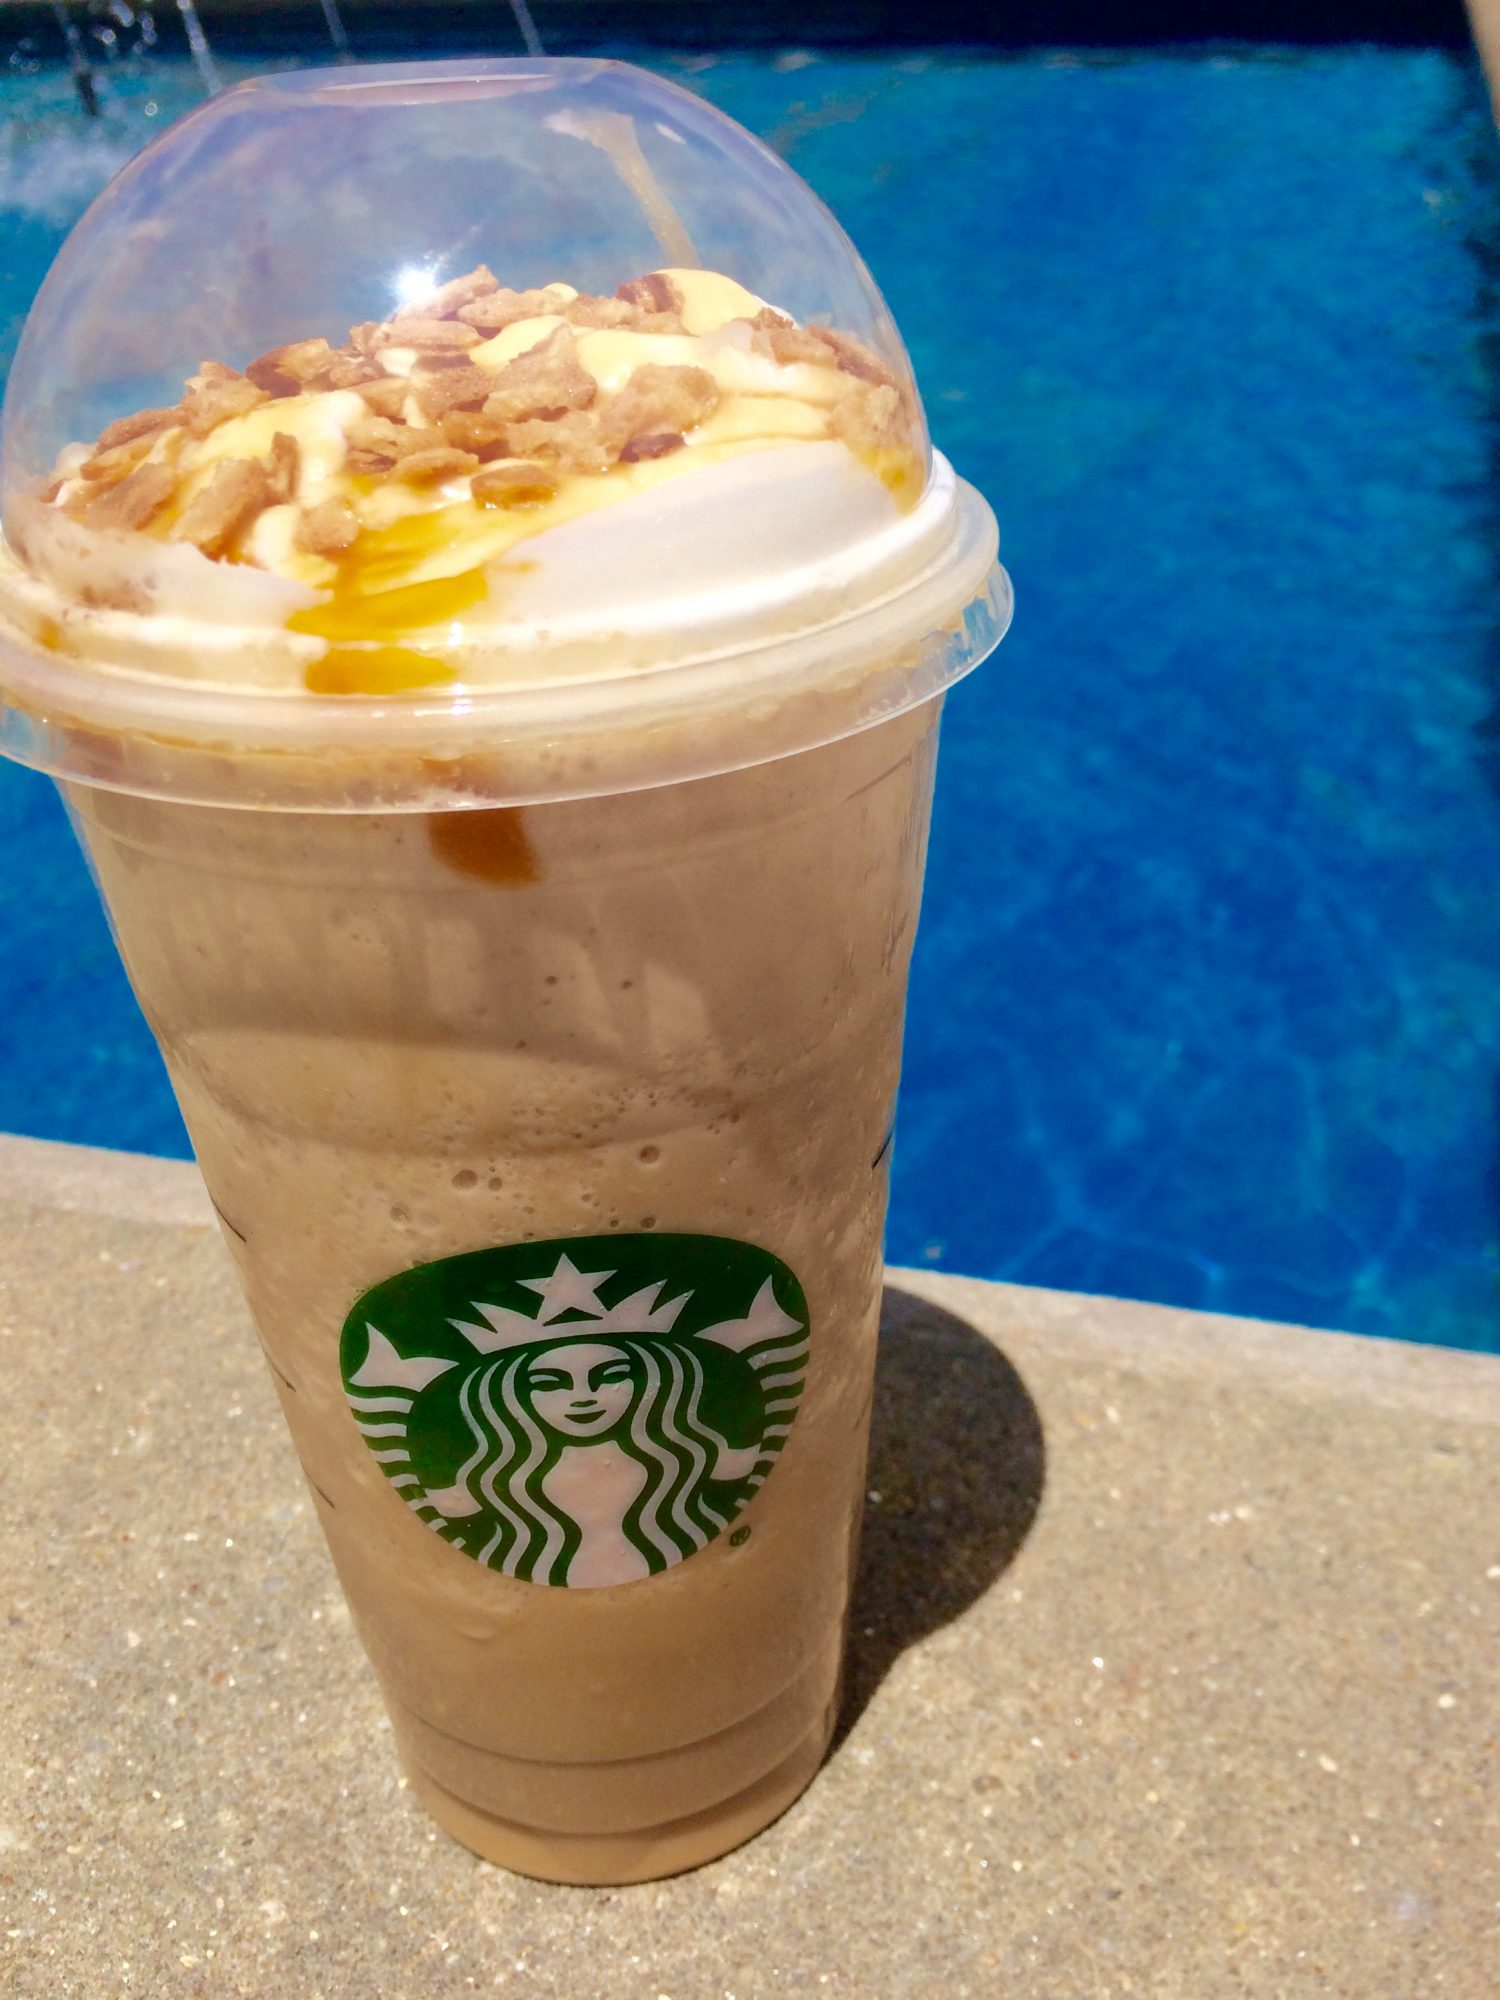 This Week's Debut of the New Starbucks Caramel Waffle Cone Frapp is Pretty Sweet! (Literally)